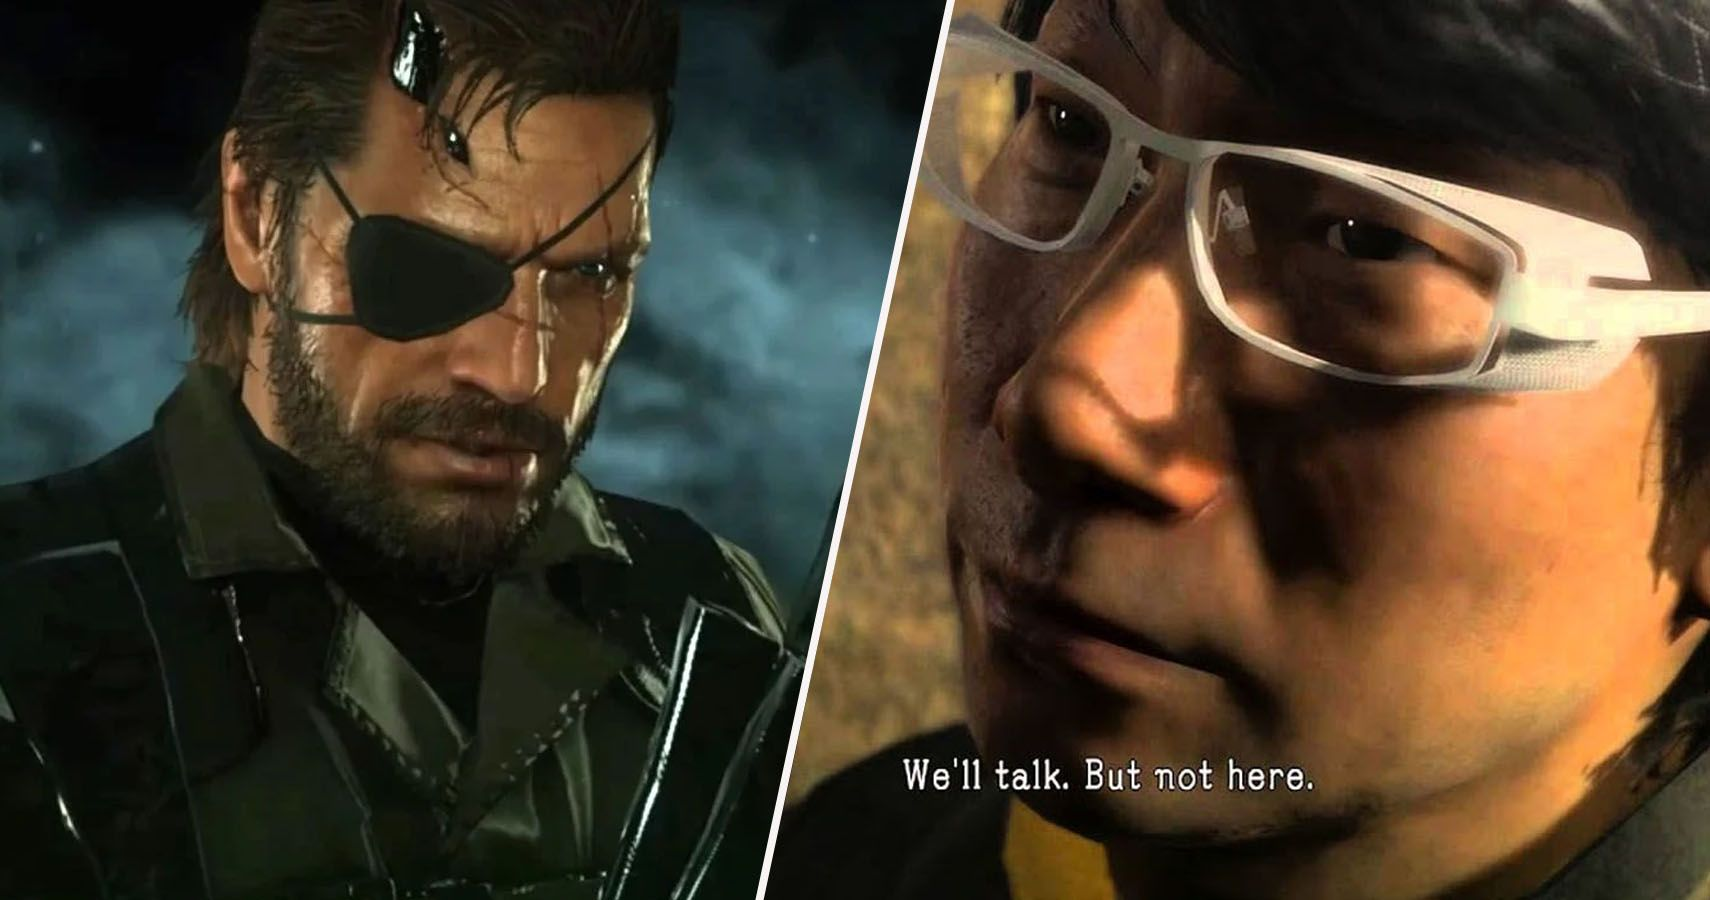 Metal Gear Solid 5: The 10 Best Side Ops (& How To Complete Them)